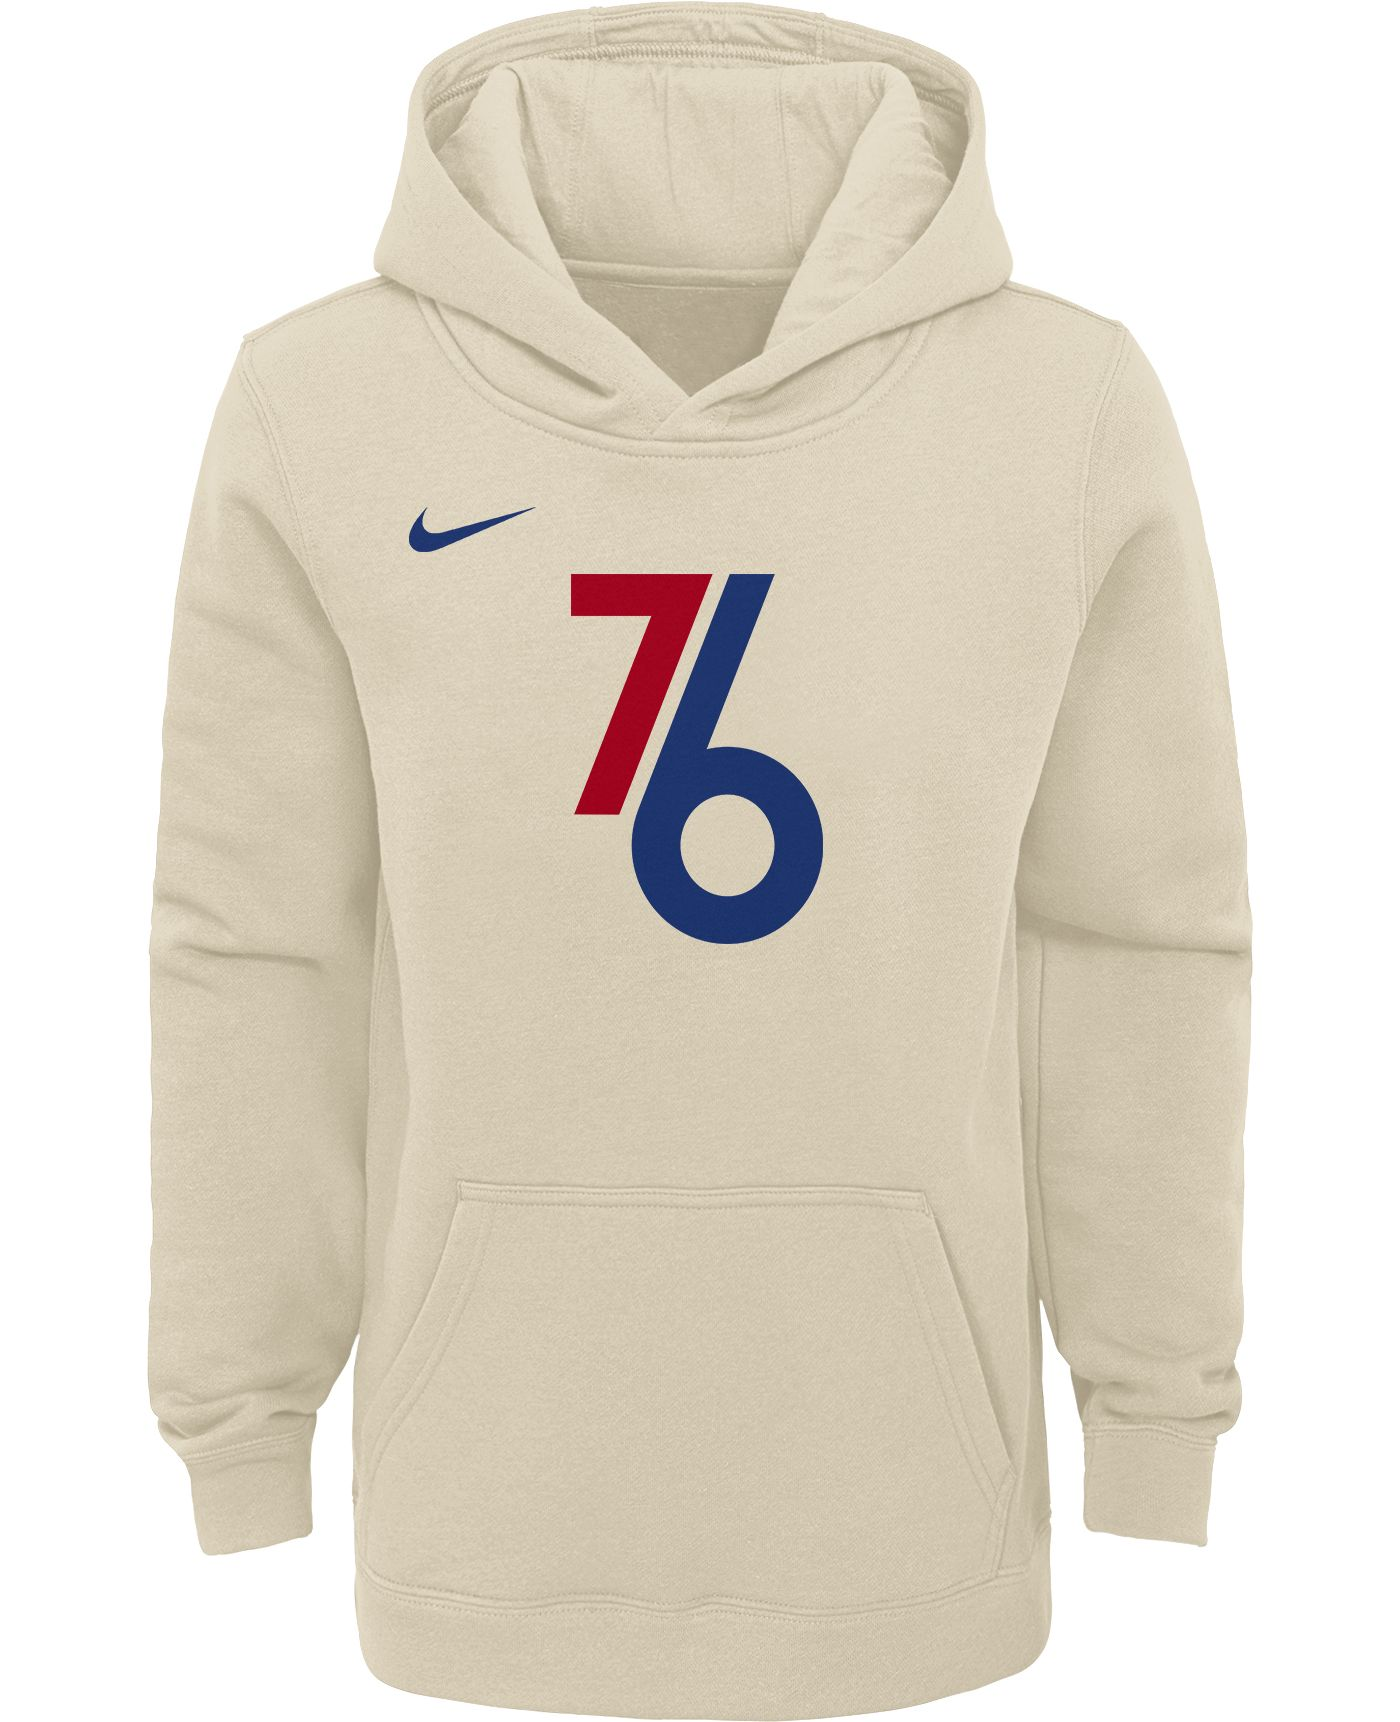 Nike Youth Philadelphia 76ers Dri-FIT City Edition Pullover Hoodie